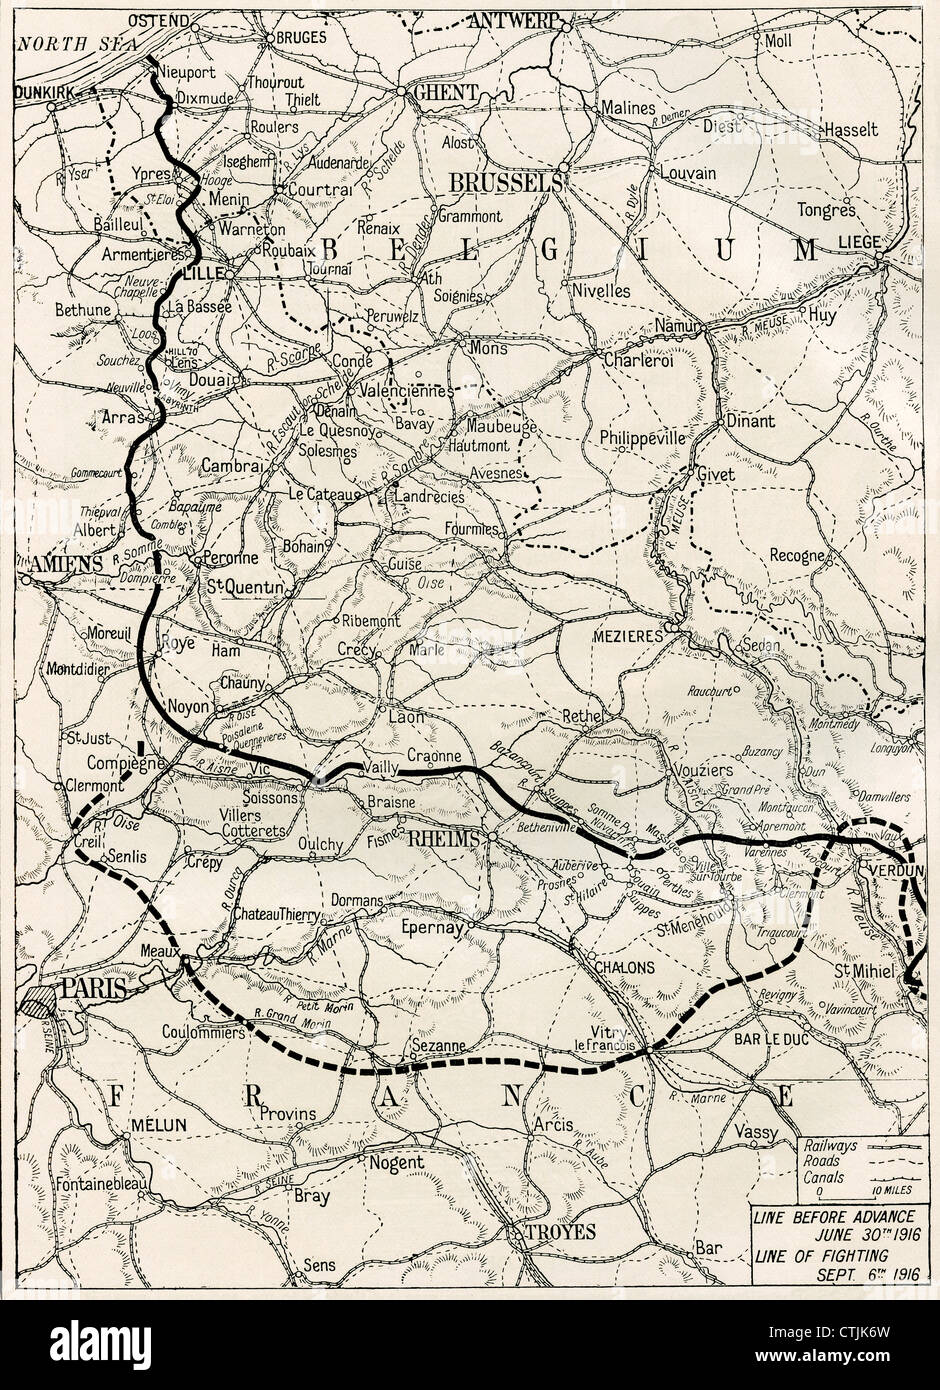 Map of the Somme offensive on the Western Front during World War One. - Stock Image